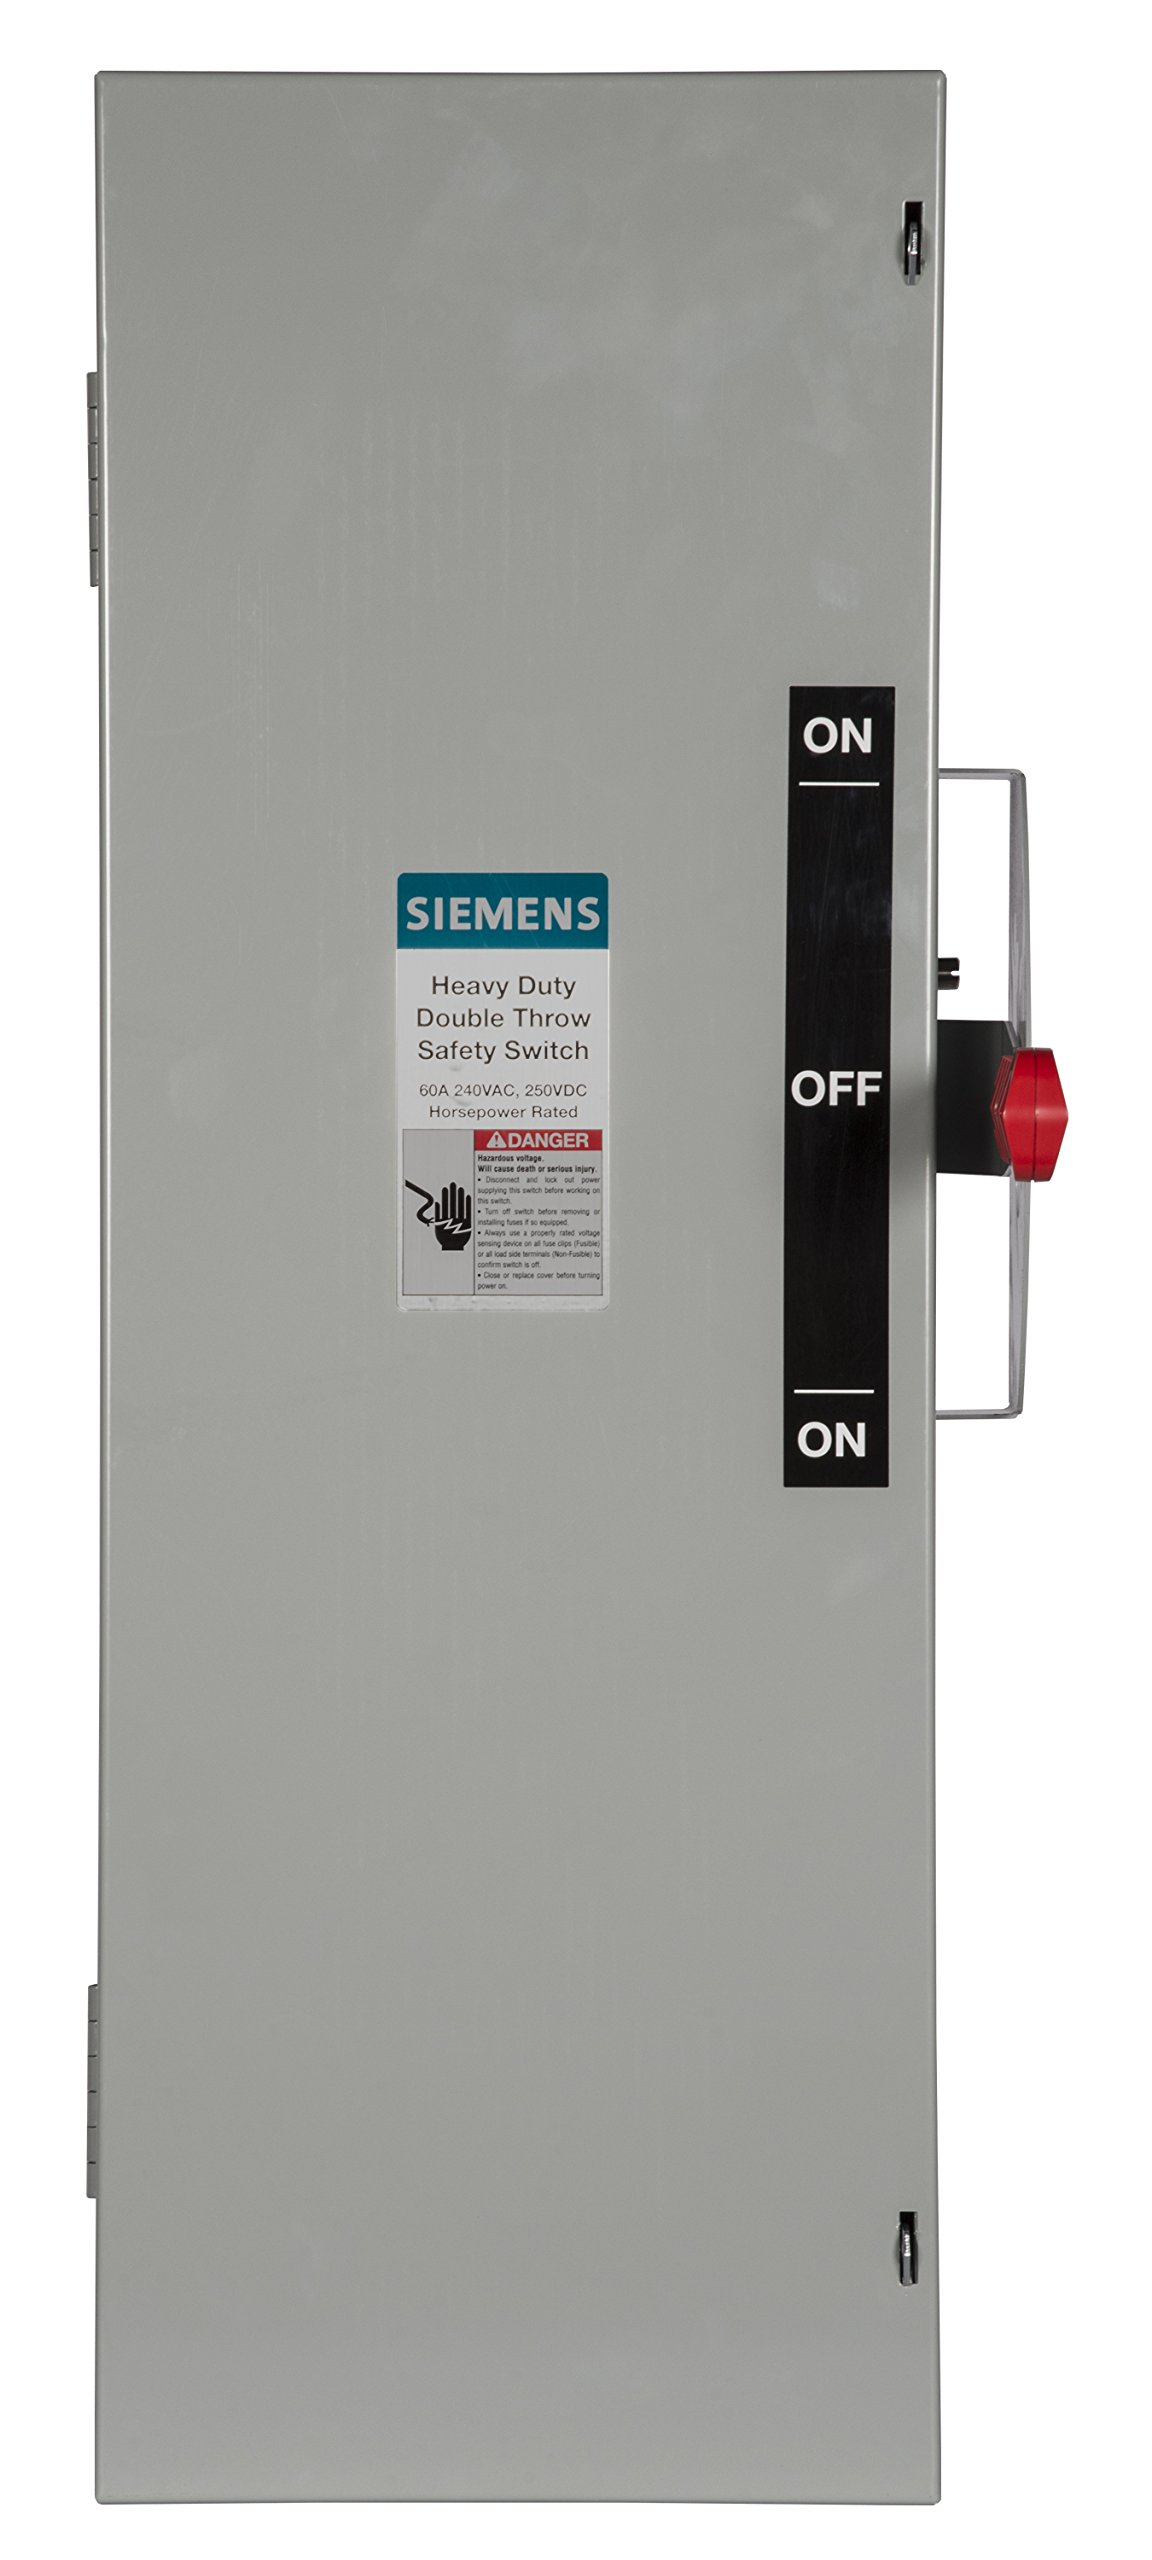 Siemens DTF322 60-Amp 3 Pole 240-volt 3 Wire Fused Double Throw Safety Switches